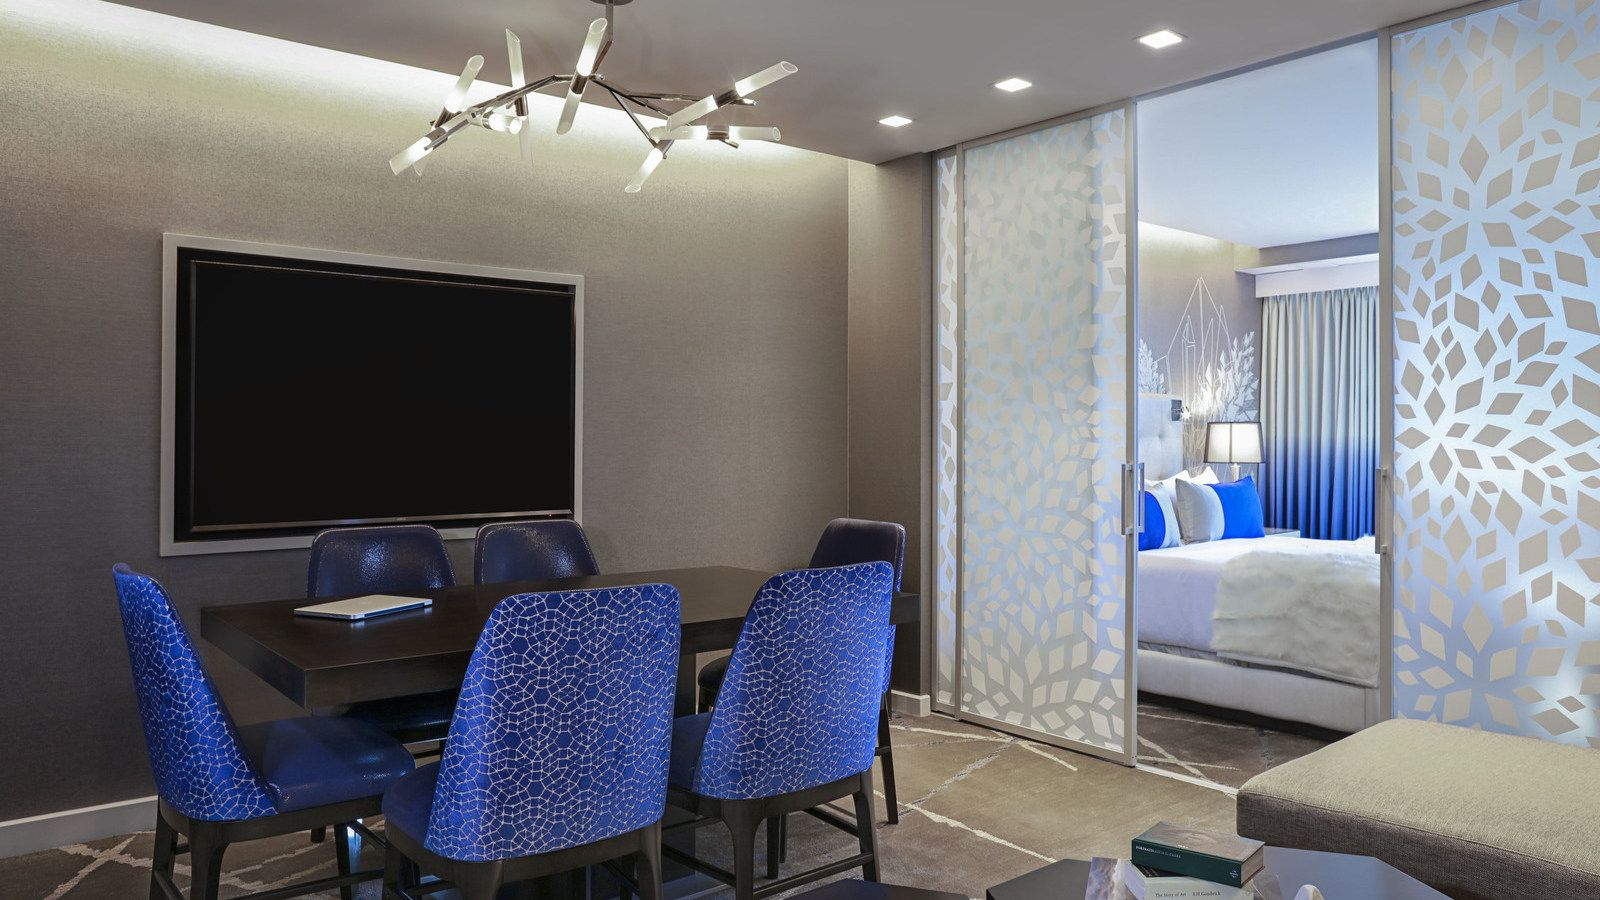 Find This Pin And More On Commercial Interior Design The Cosmopolitan Of Las Vegas